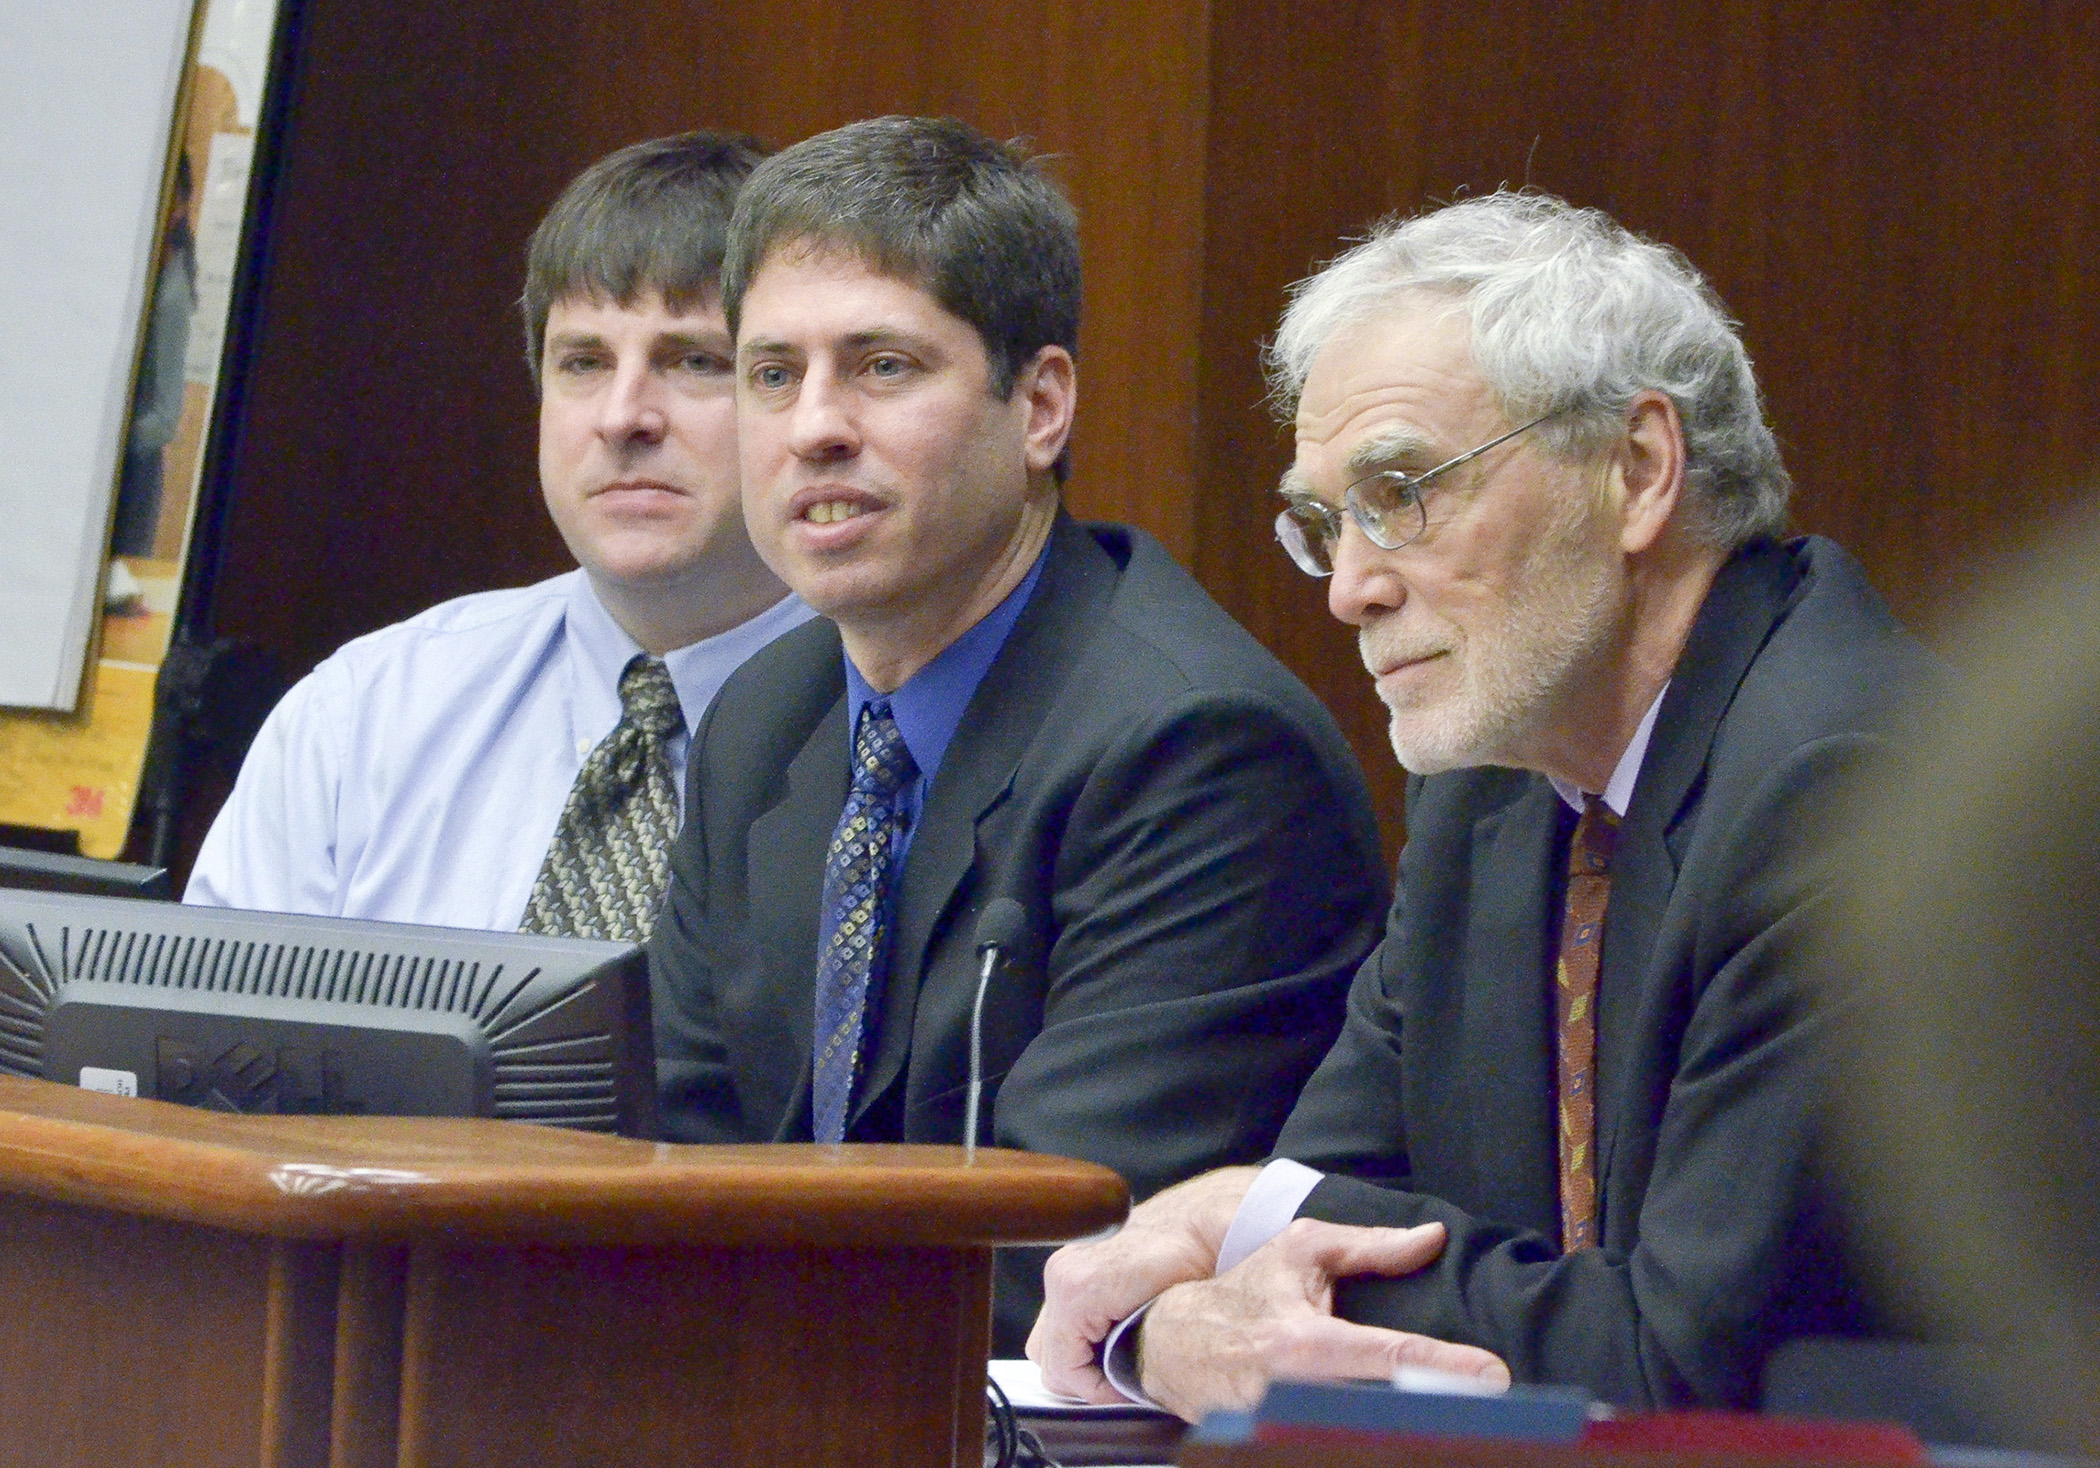 University of Minnesota professors (from left) Dr. Tim LaPara, Dr. William Arnold and Dr. Daniel Engstrom answer questions on triclosan from members of the House Environment, Natural Resources and Agriculture Committee March 5